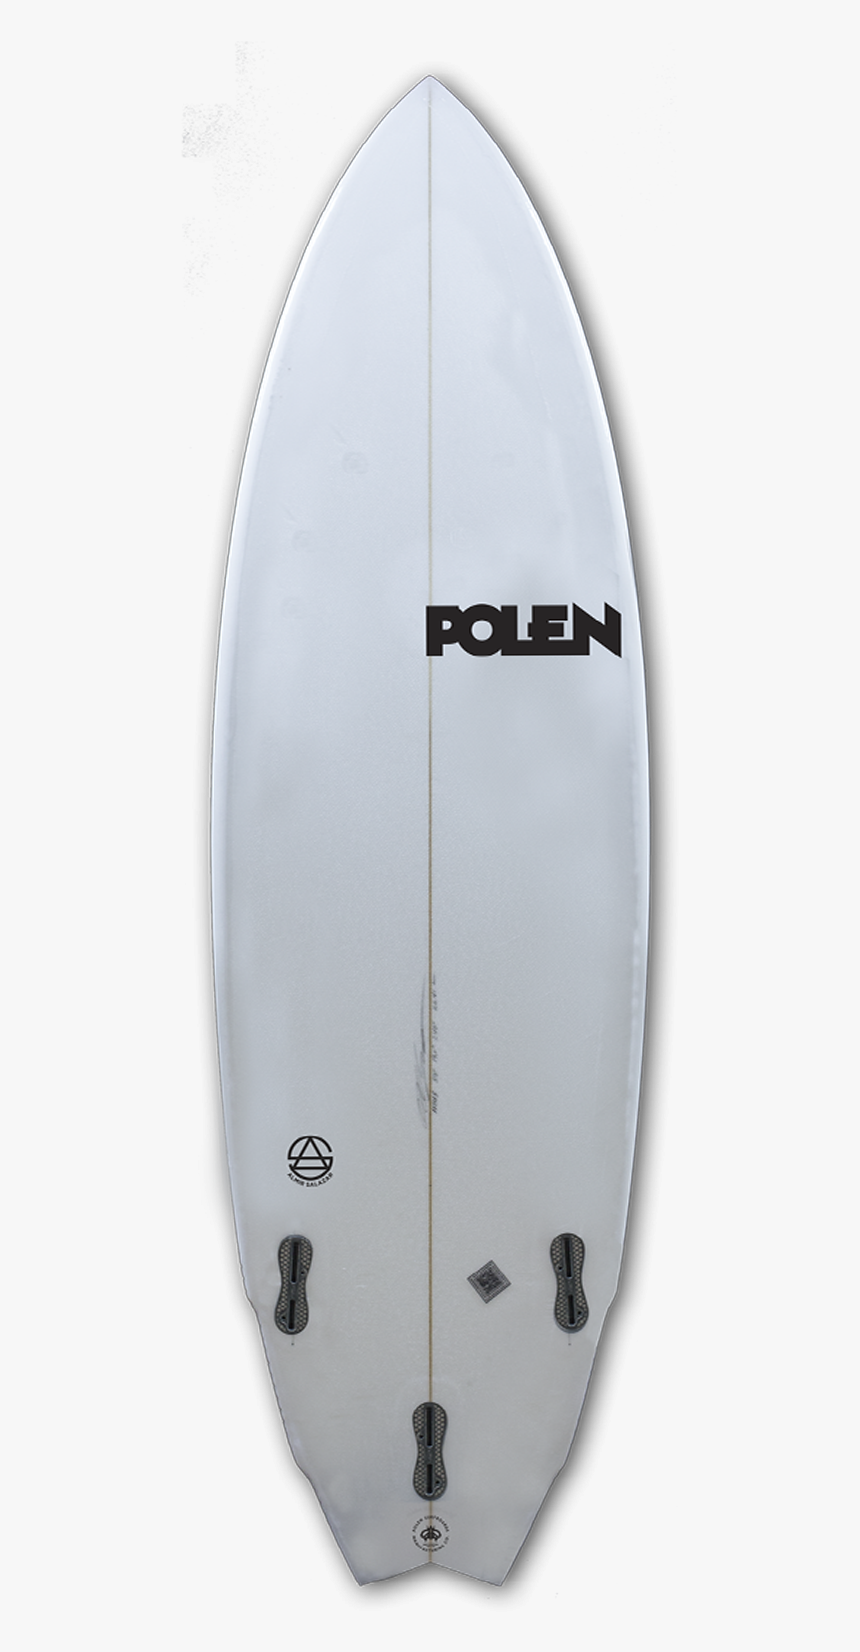 Polen Surfboards, HD Png Download, Free Download